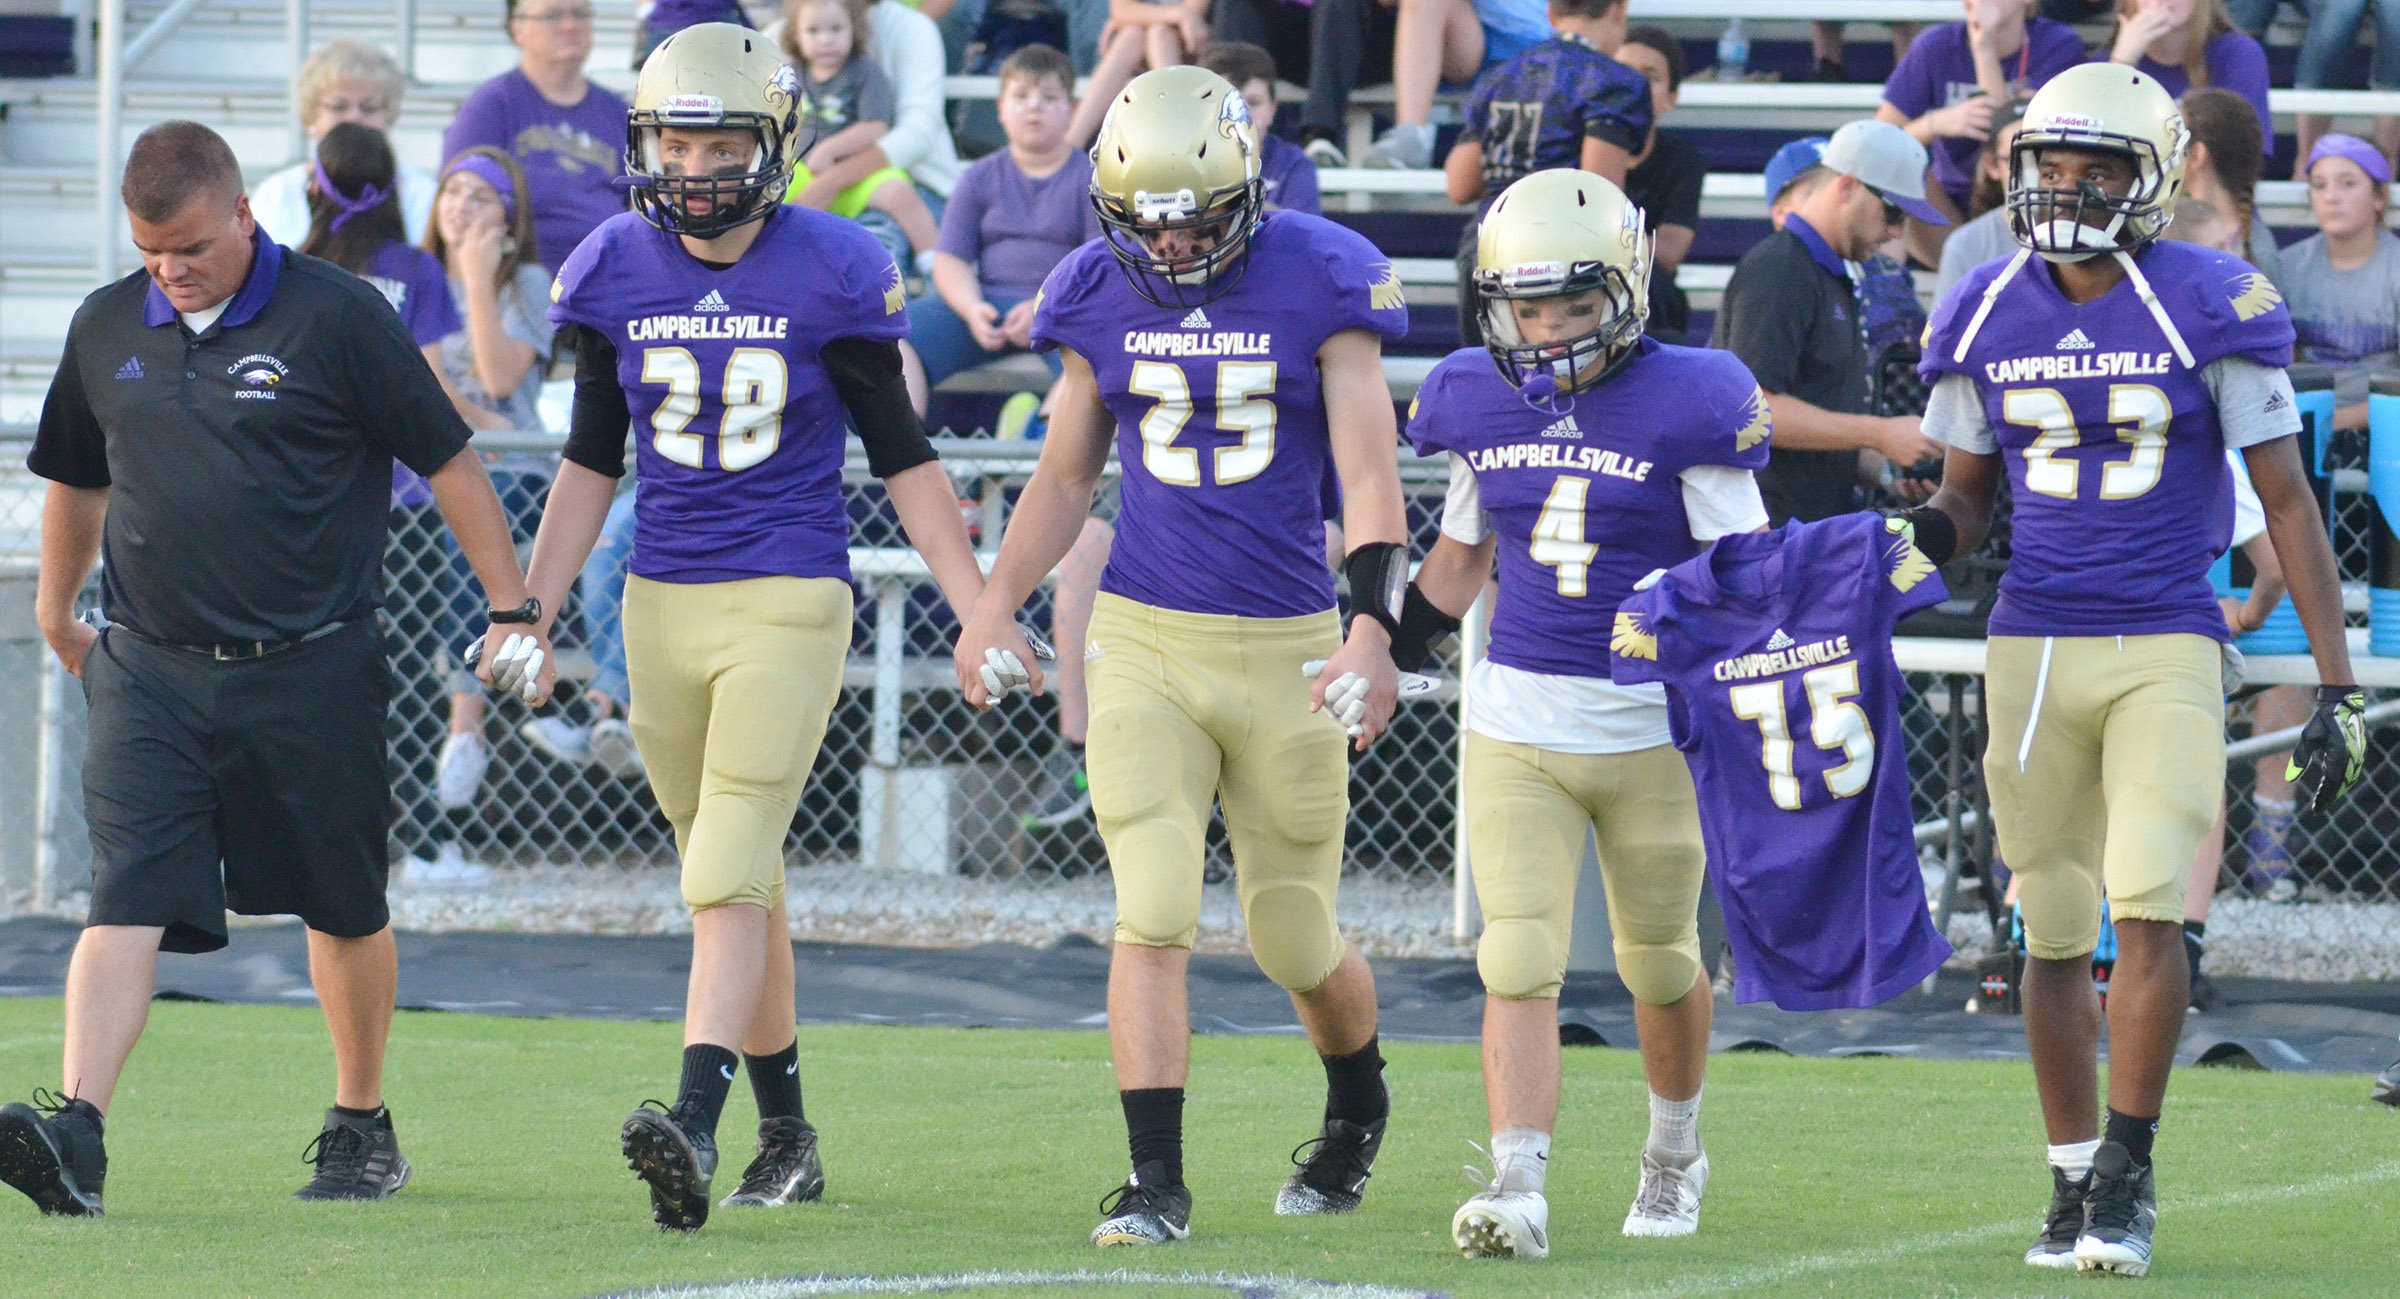 CHS head football coach Dale Estes, at left, lines up with, from left, sophomore Blake Allen, junior Tristan Johnson and seniors Austin Carter and Tyrion Taylor for the coin toss. The players are carrying a jersey in honor of Cameron Smith, who died in 2013 and would have been a senior at CHS this year.